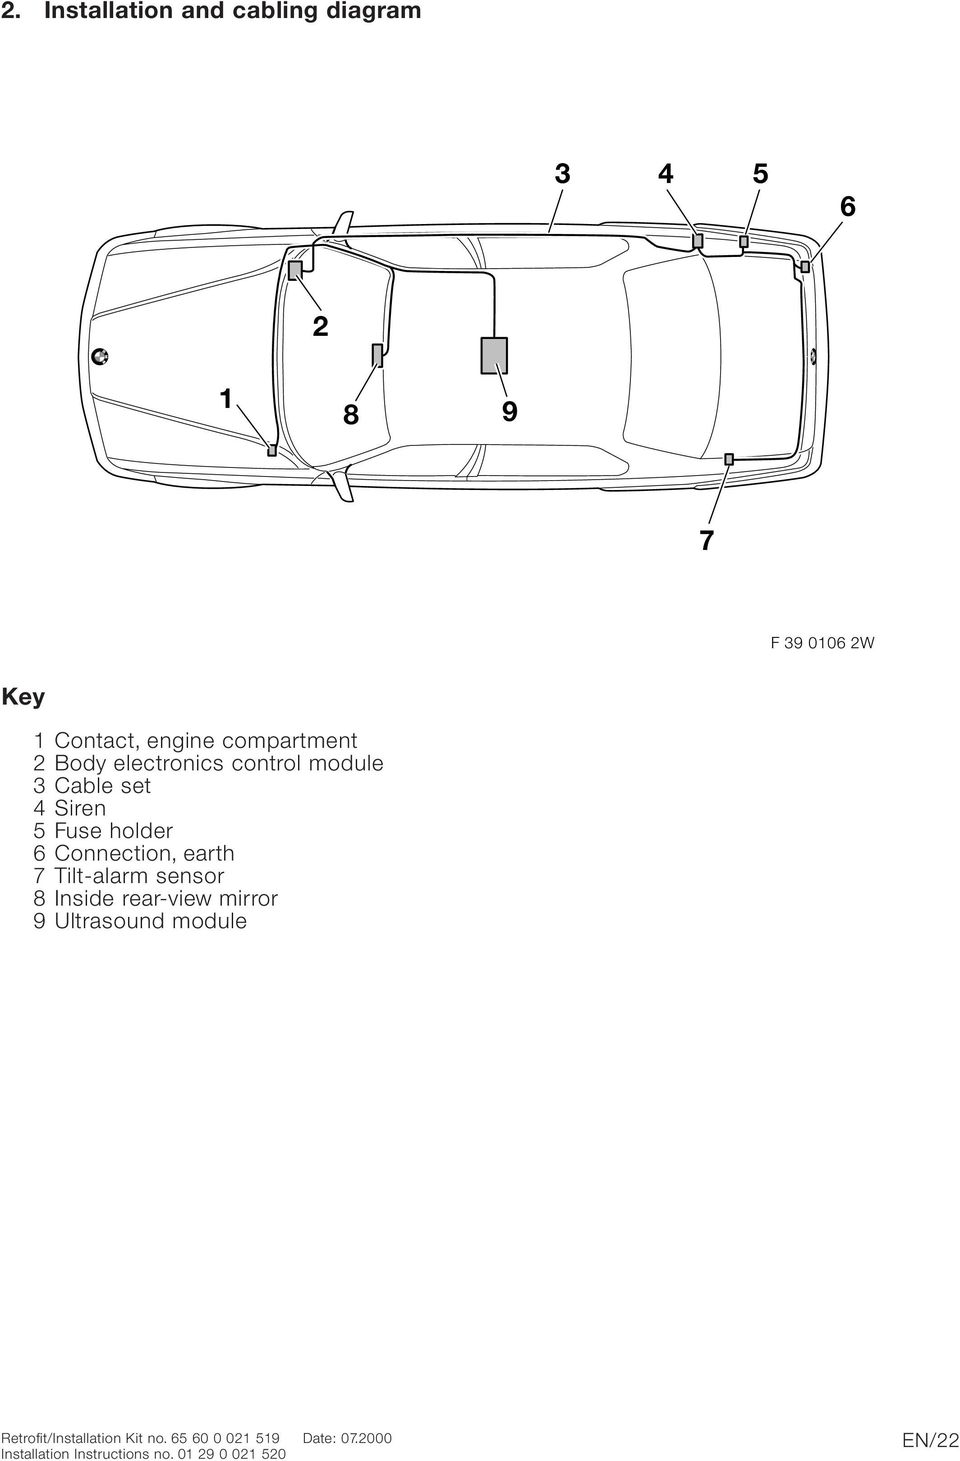 Bmw Parts And Accessories Installation Instructions Pdf 2003 Toyota Tundra Engine Compartment Diagram Connection Earth 7 Tilt Alarm Sensor 8 Inside Rear View Mirror 9 Ultrasound